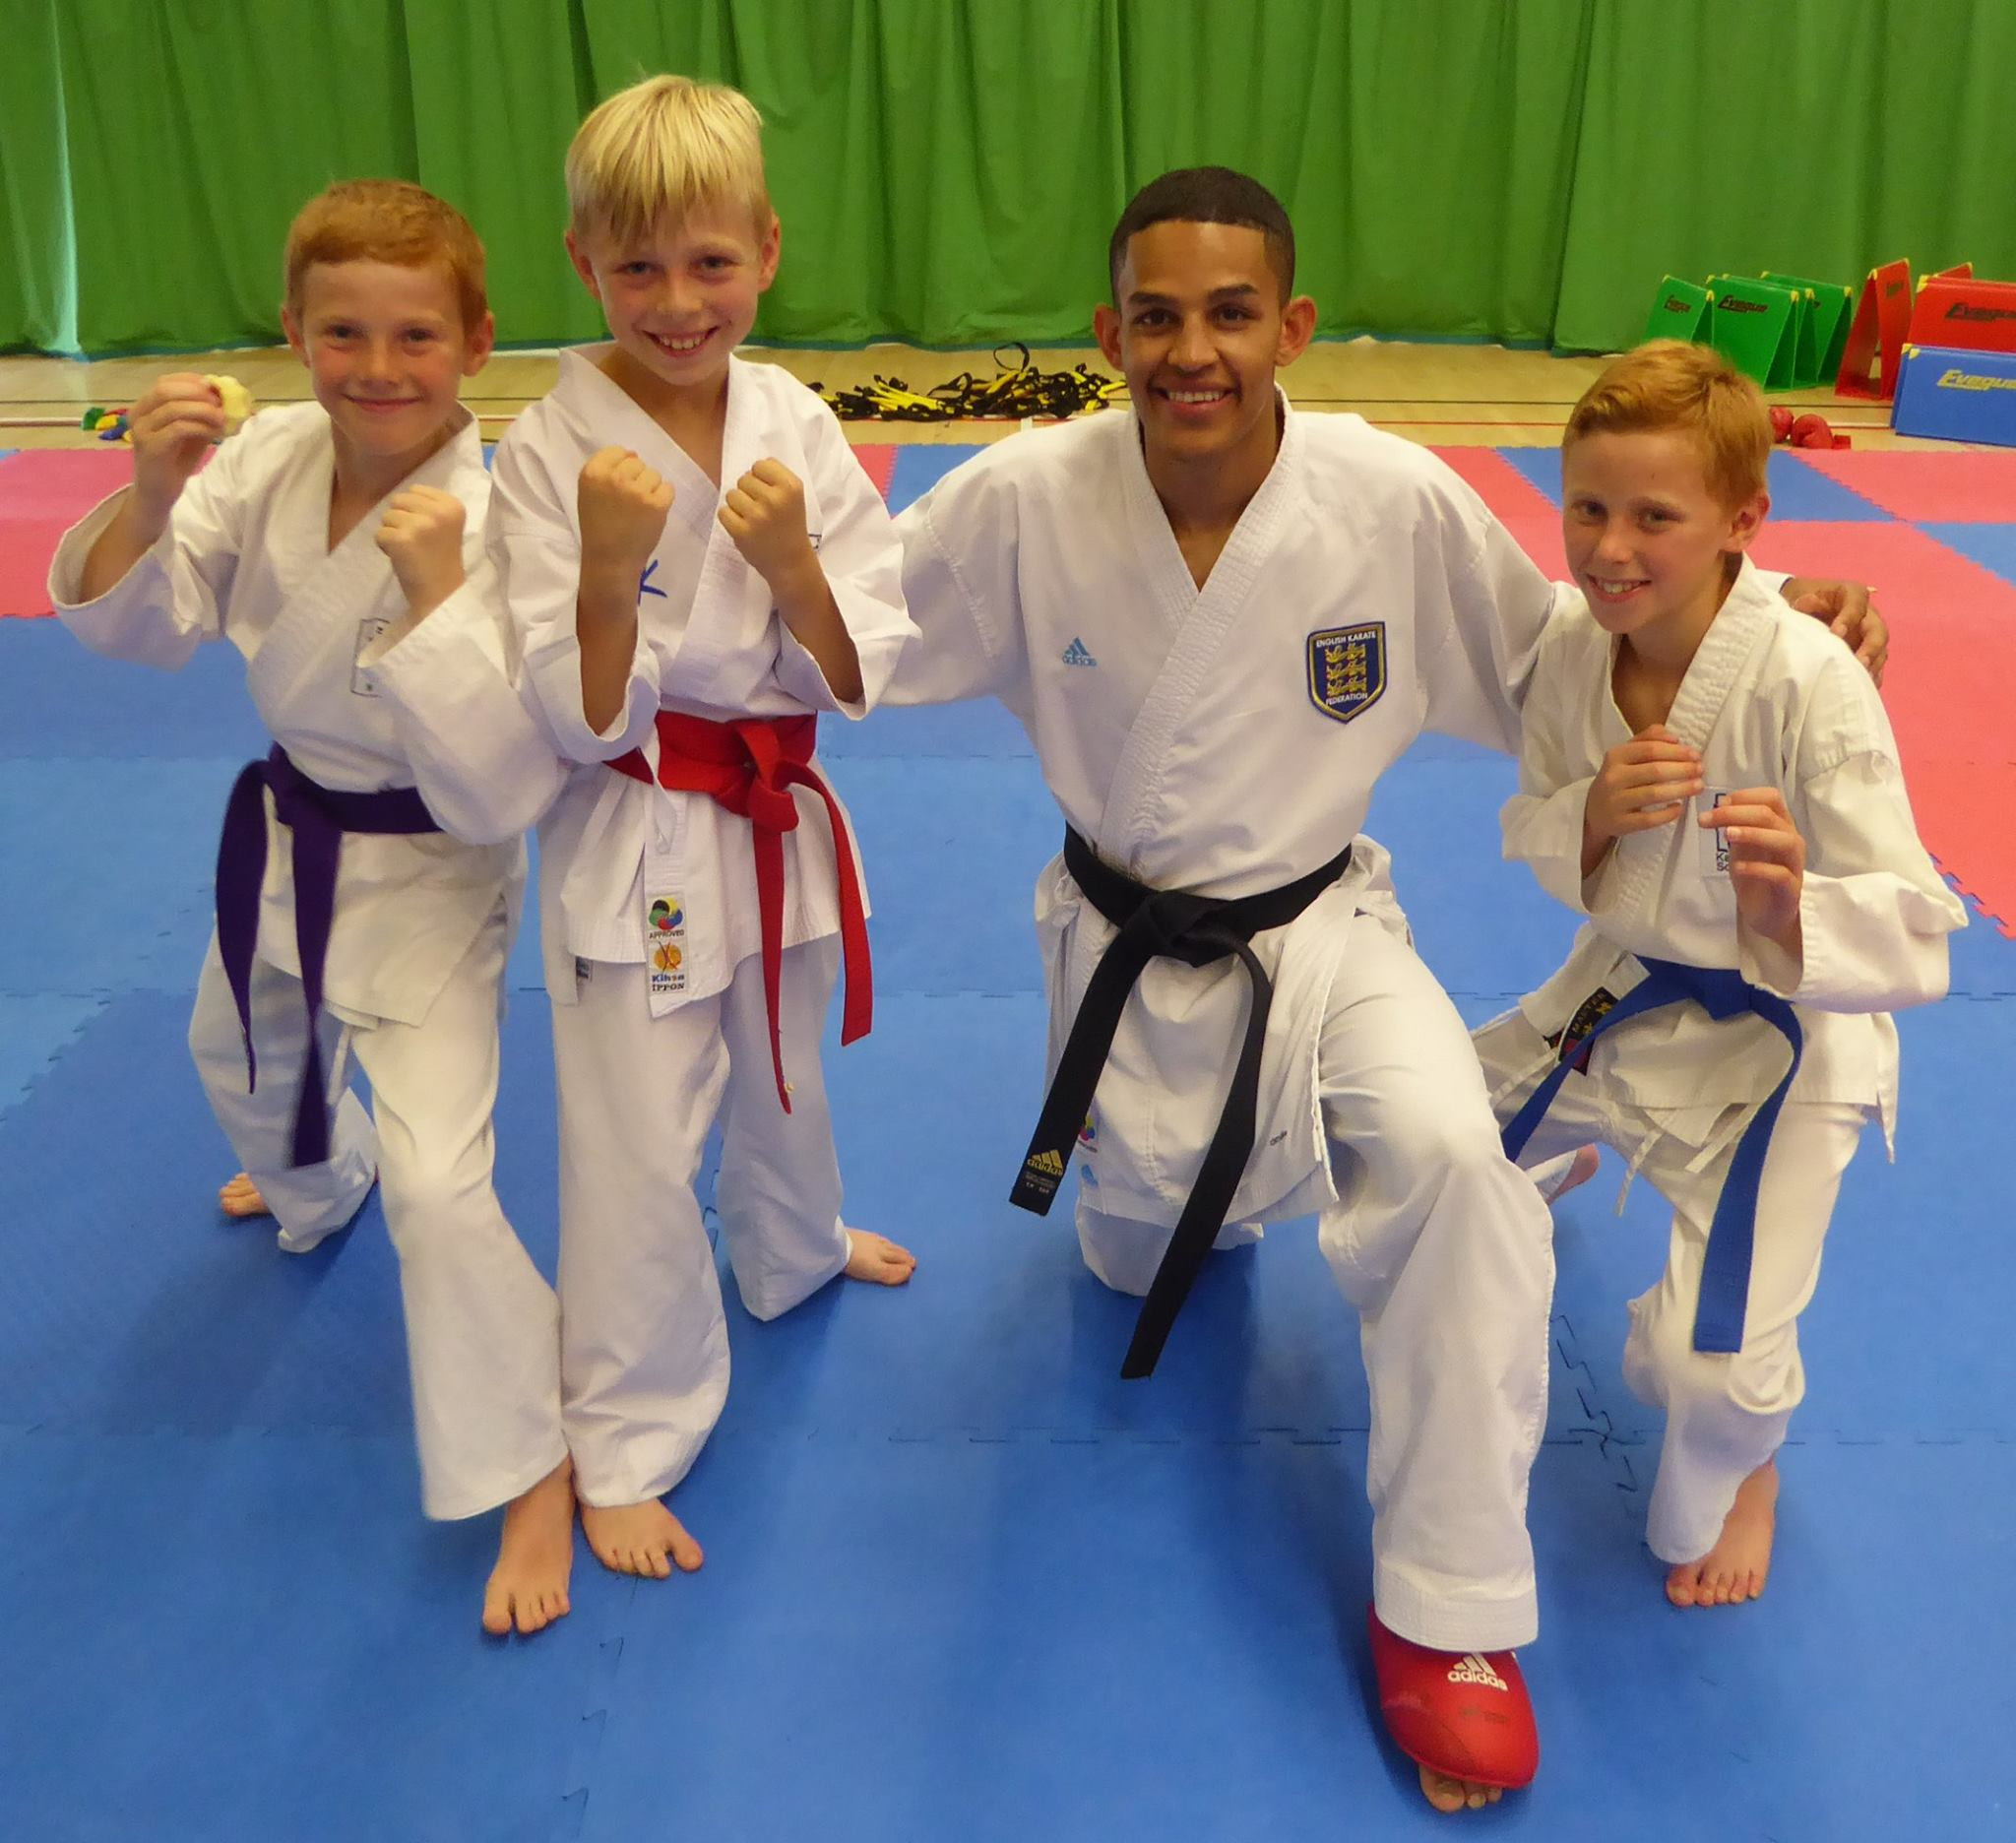 British karate world champion Jordan Thomas is pictured with young students of the game ©Jordan Thomas/Facebook